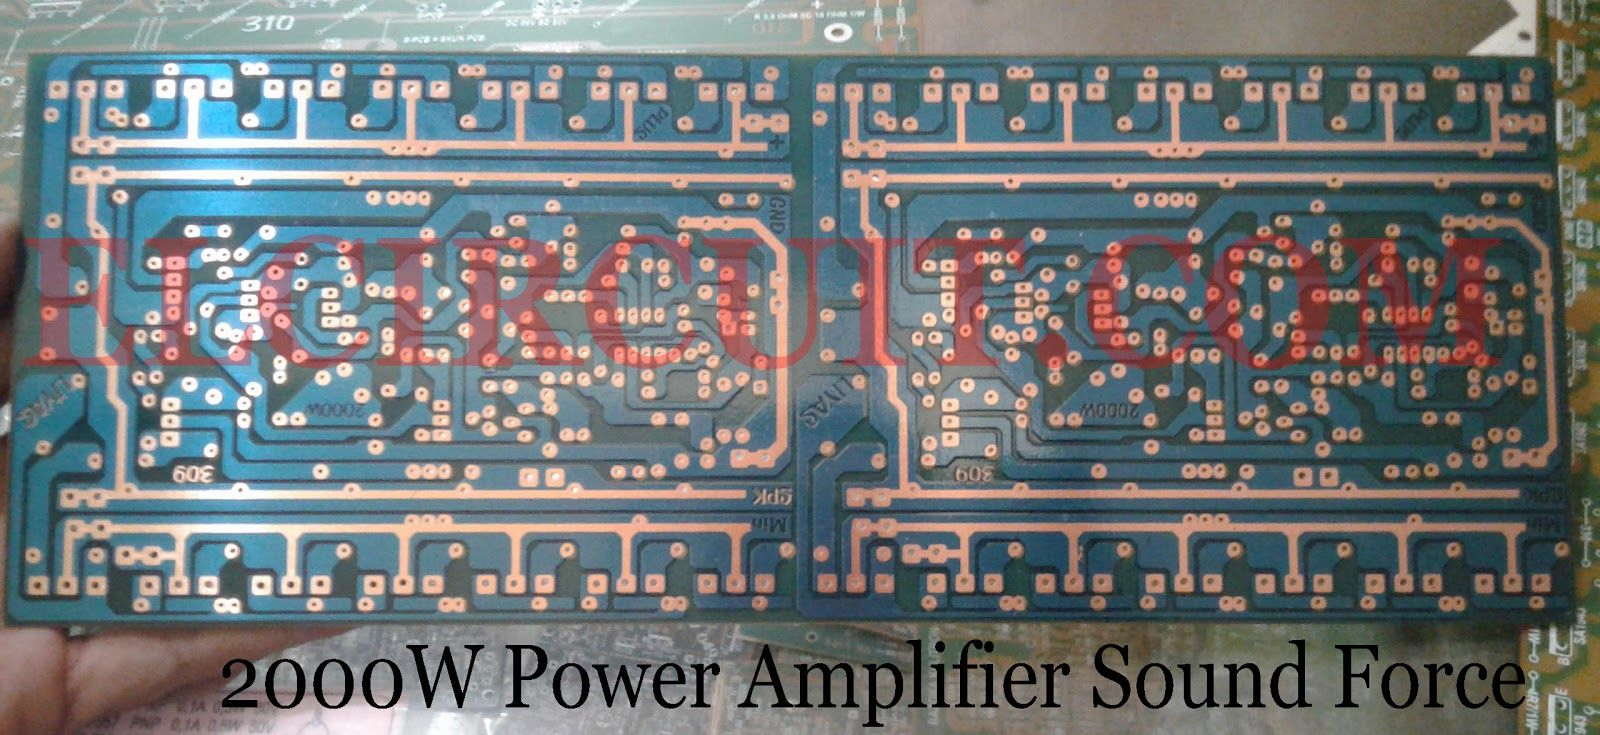 2000w Power Amplifier Circuit Complete Pcb Layout Electronic Diagram Components